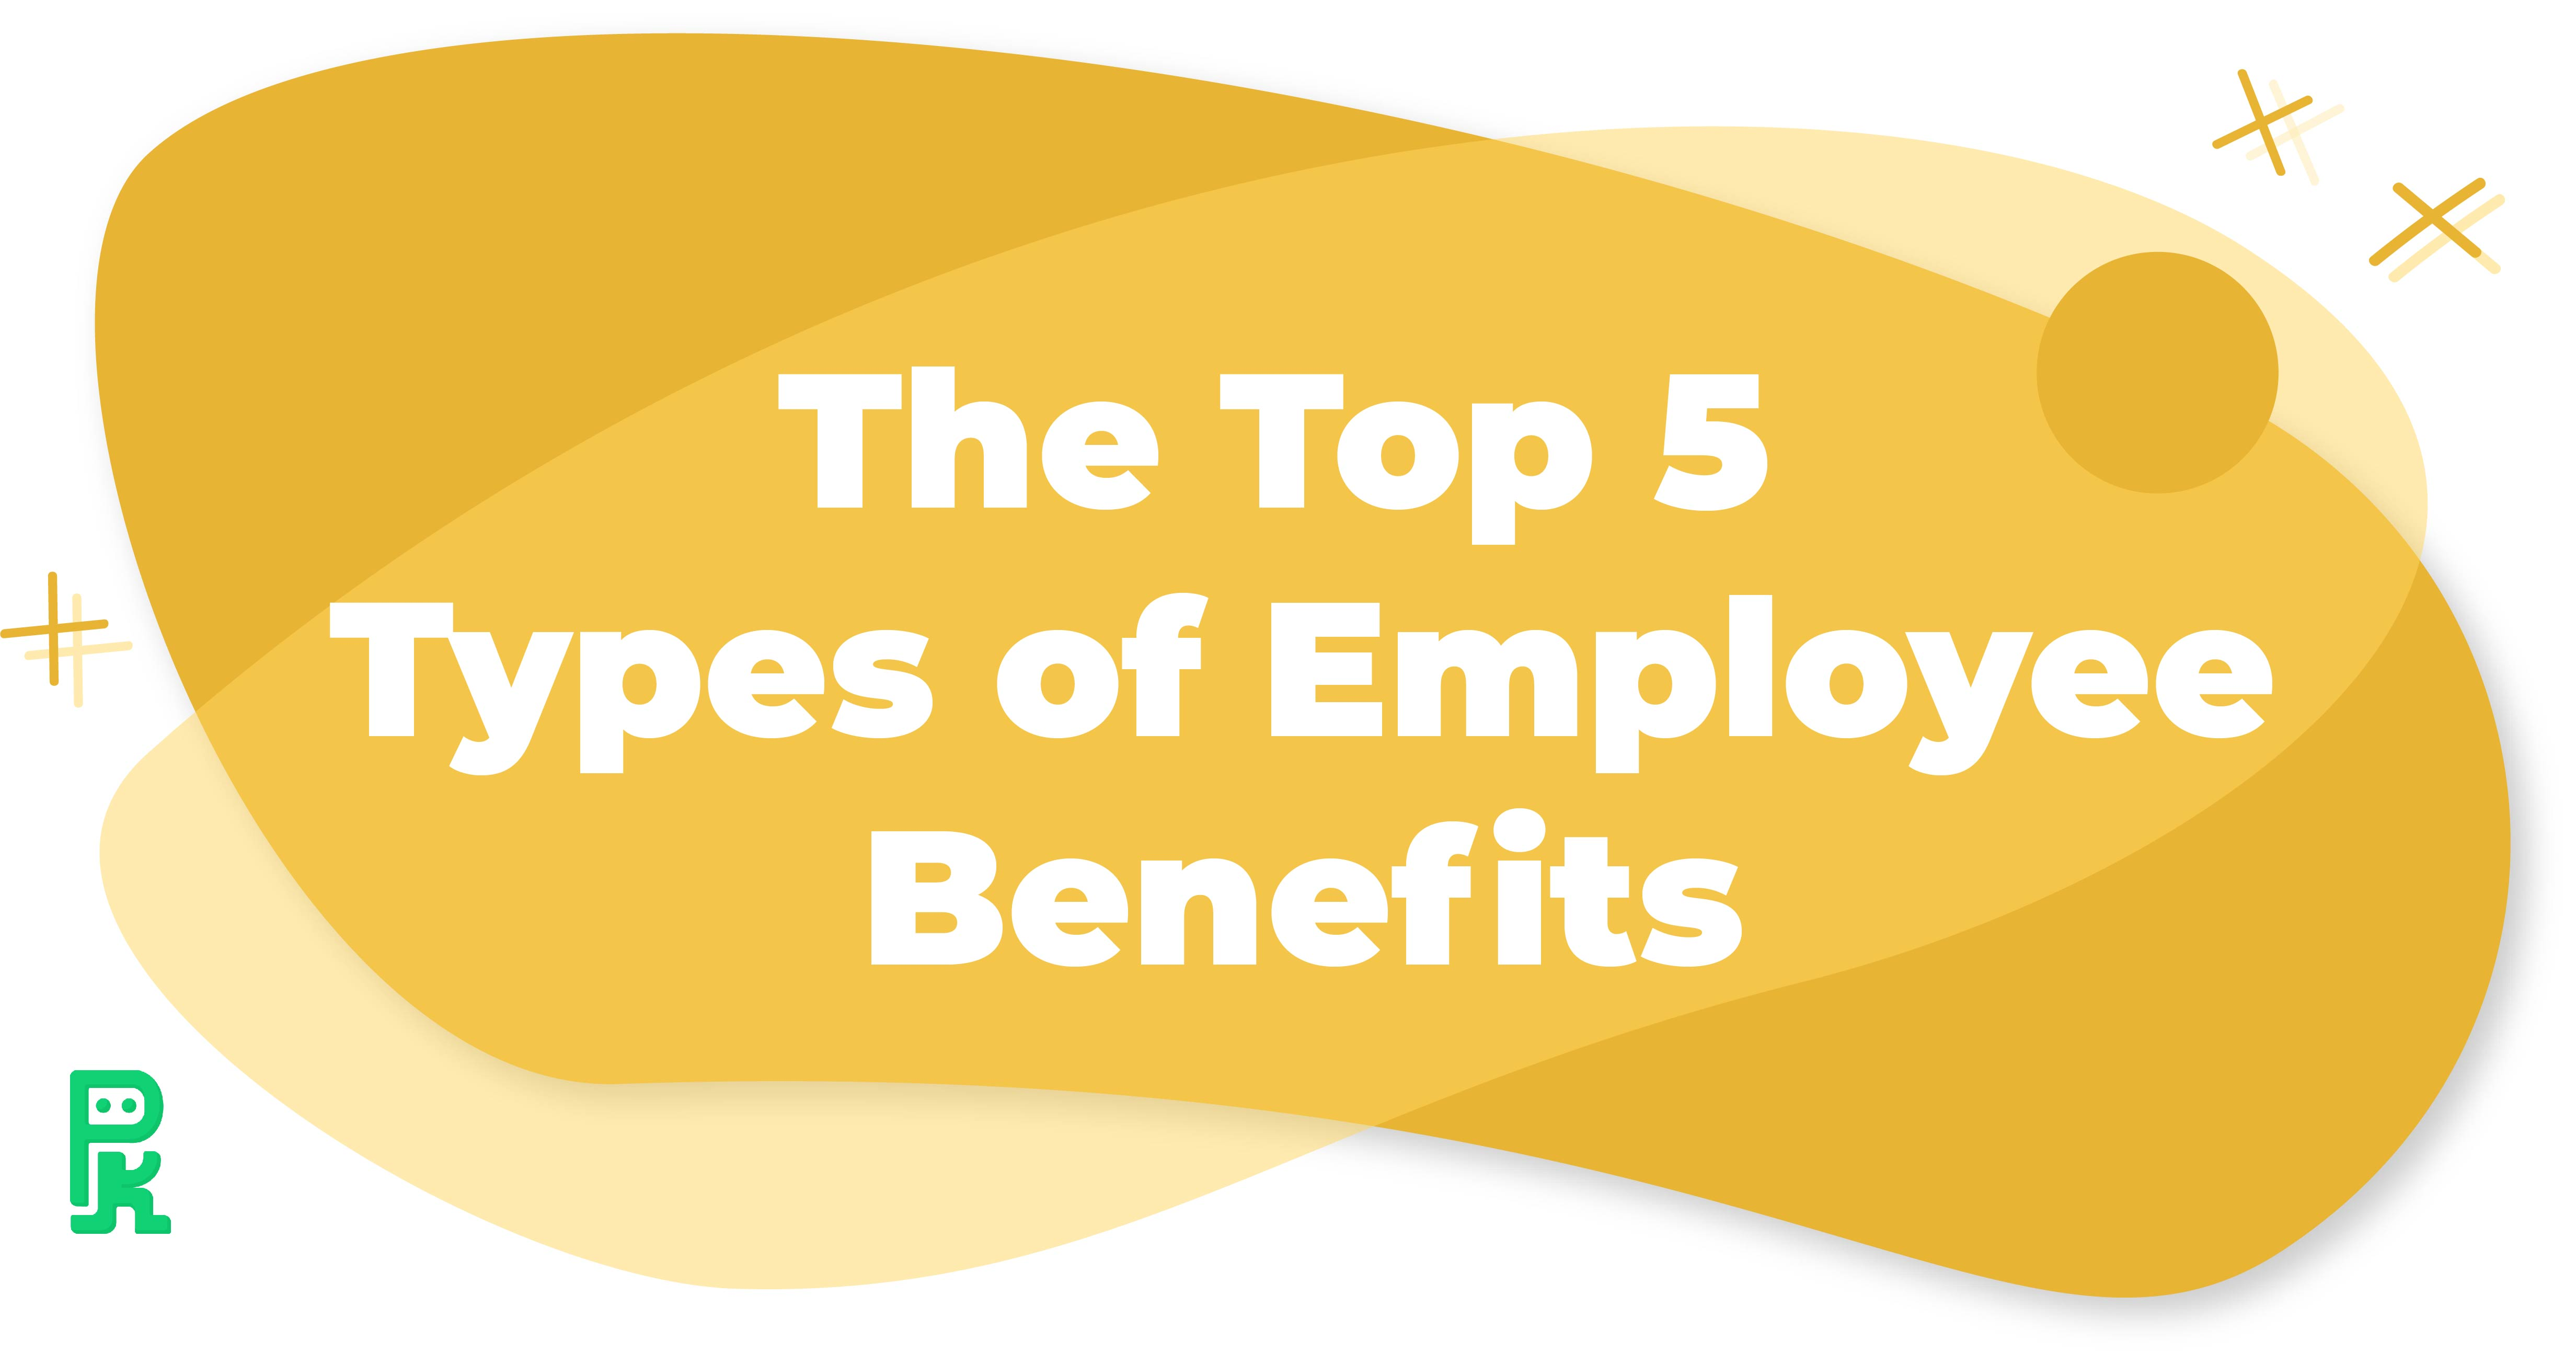 employee benefits, health reimbursement arrangement